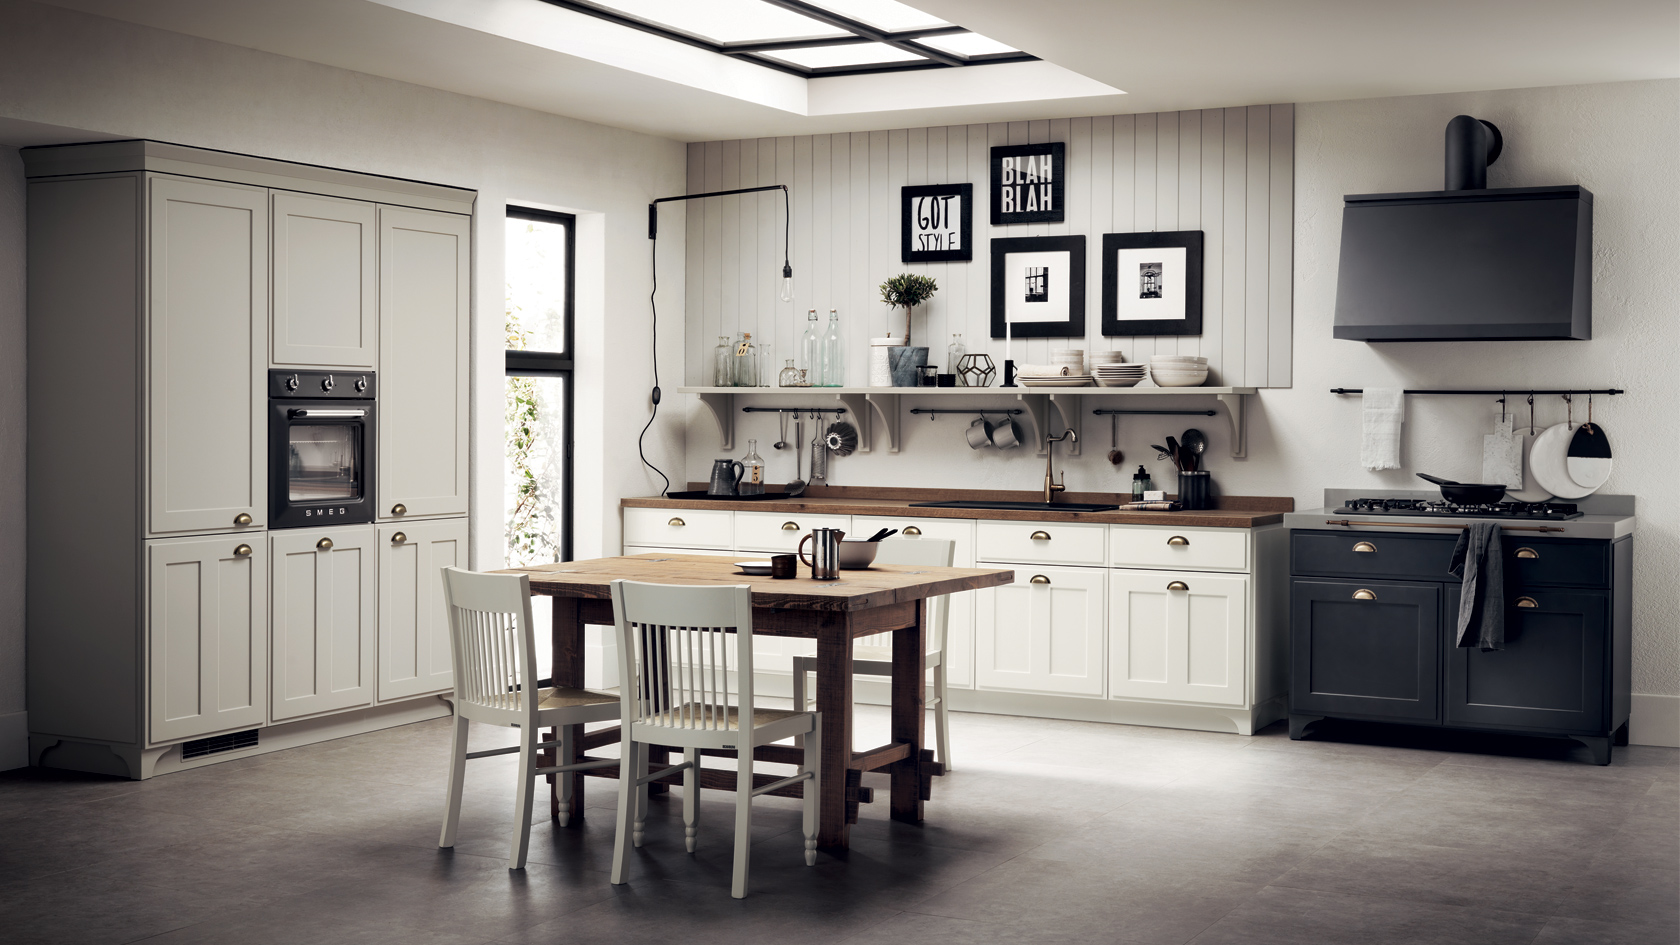 Beautiful Sedie Cucina Scavolini Images - Design & Ideas 2017 ...